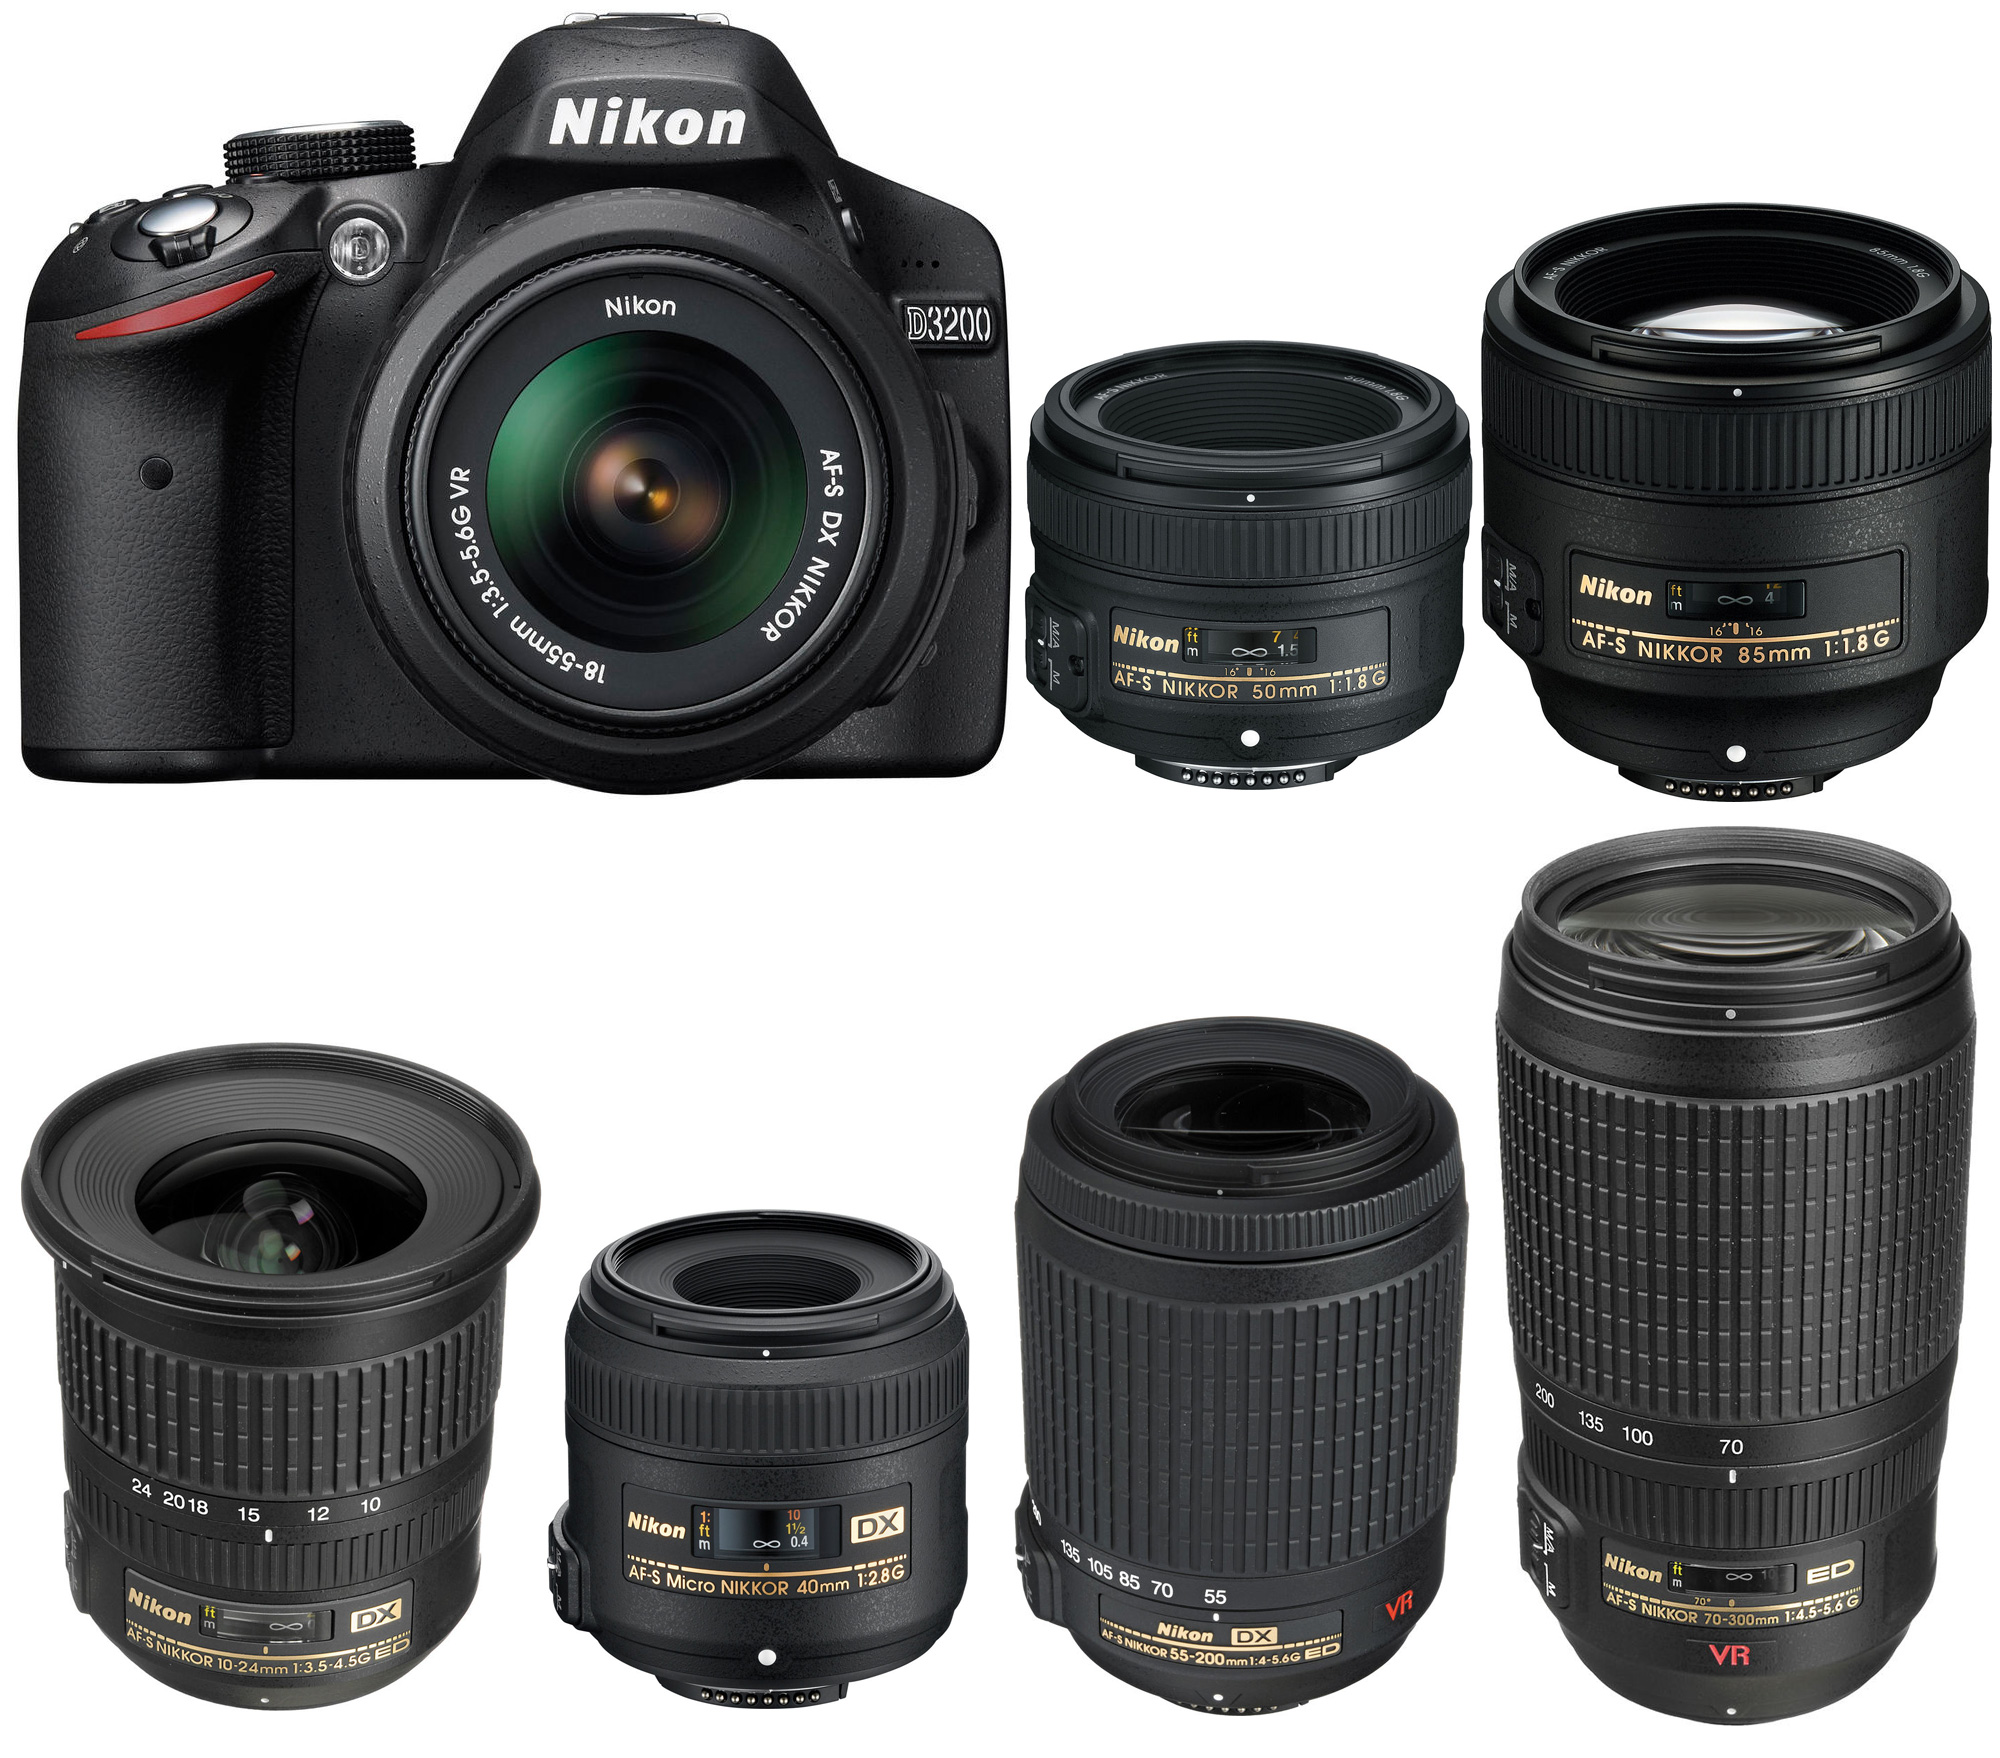 Nikon D3200 is an entry-level APS-C DX DSLR camera released in 2012